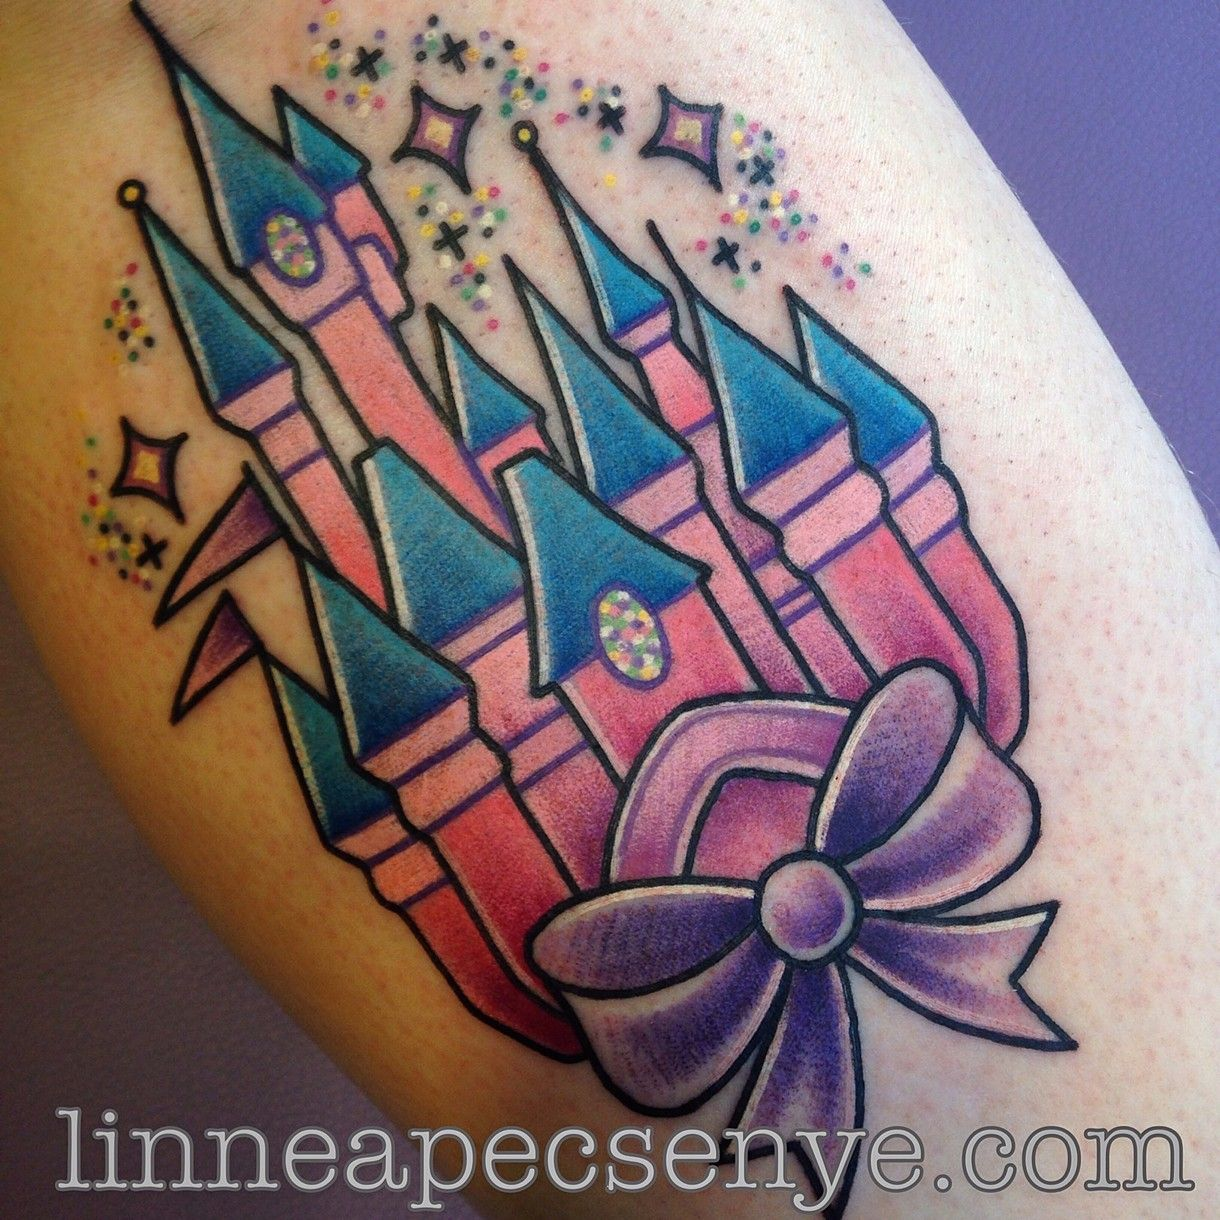 Disney tattoos and tattoo designs - Absolutely Love The Colors Sparkles Of This Princess Castle Tattoos By Linnea Pecsenye Disney Castle Tattooprincess